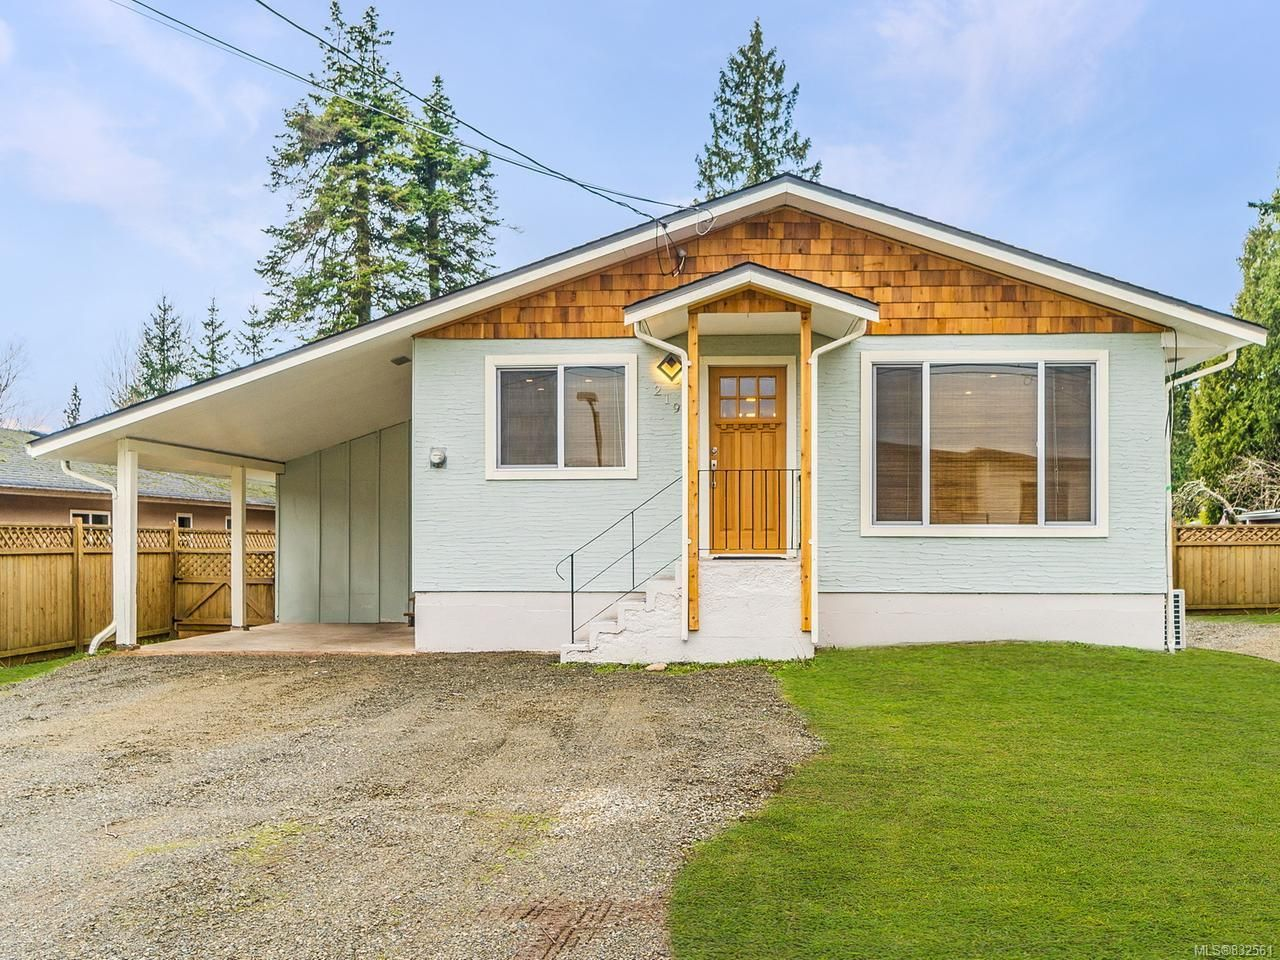 Main Photo: 219 McVickers St in PARKSVILLE: PQ Parksville House for sale (Parksville/Qualicum)  : MLS®# 832561